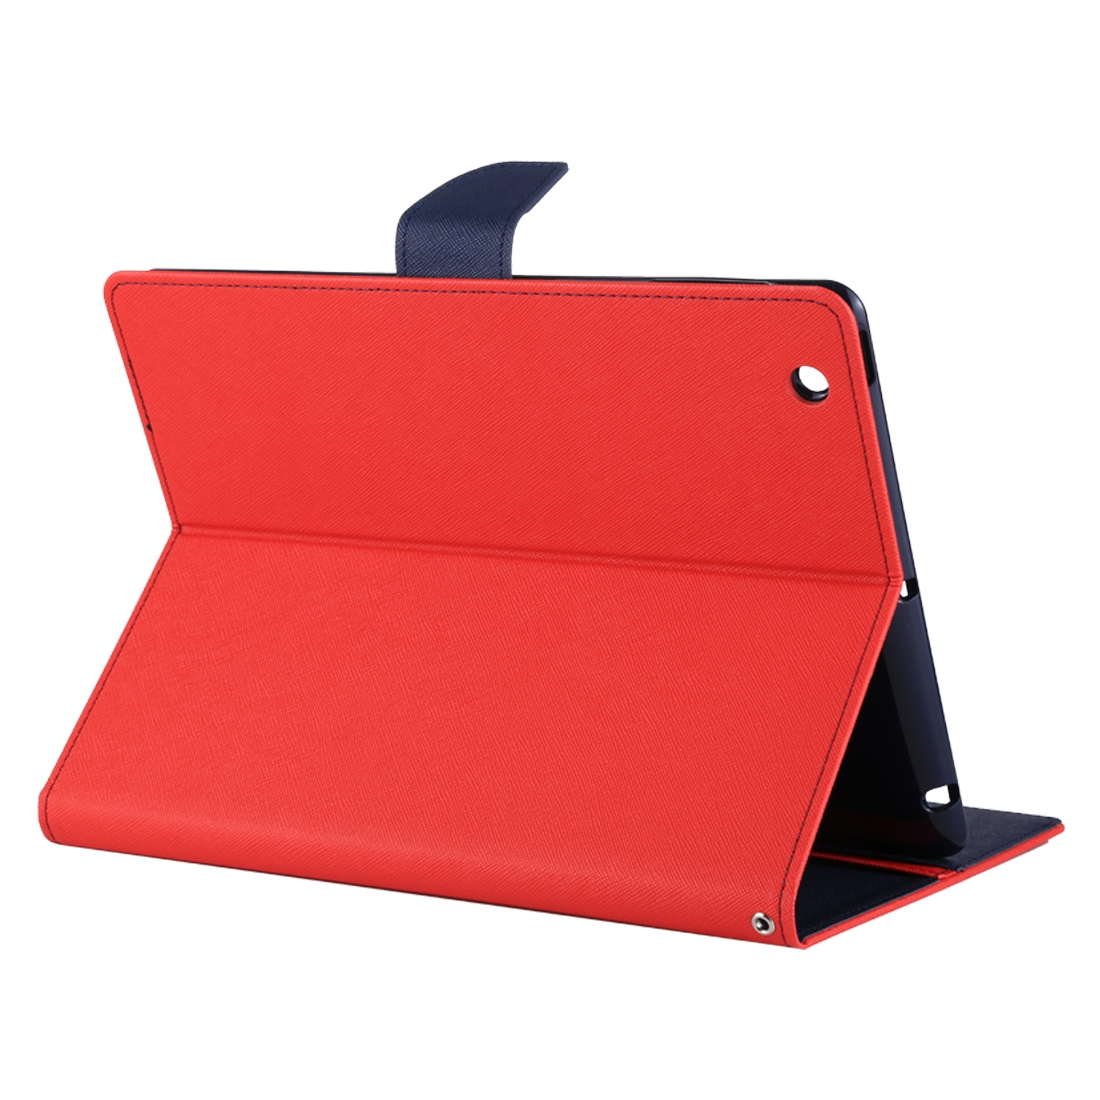 iPad 4th Generation Case Fits iPad 2,3,4, Cross Texture Leather Case & Slim Profile (Red)